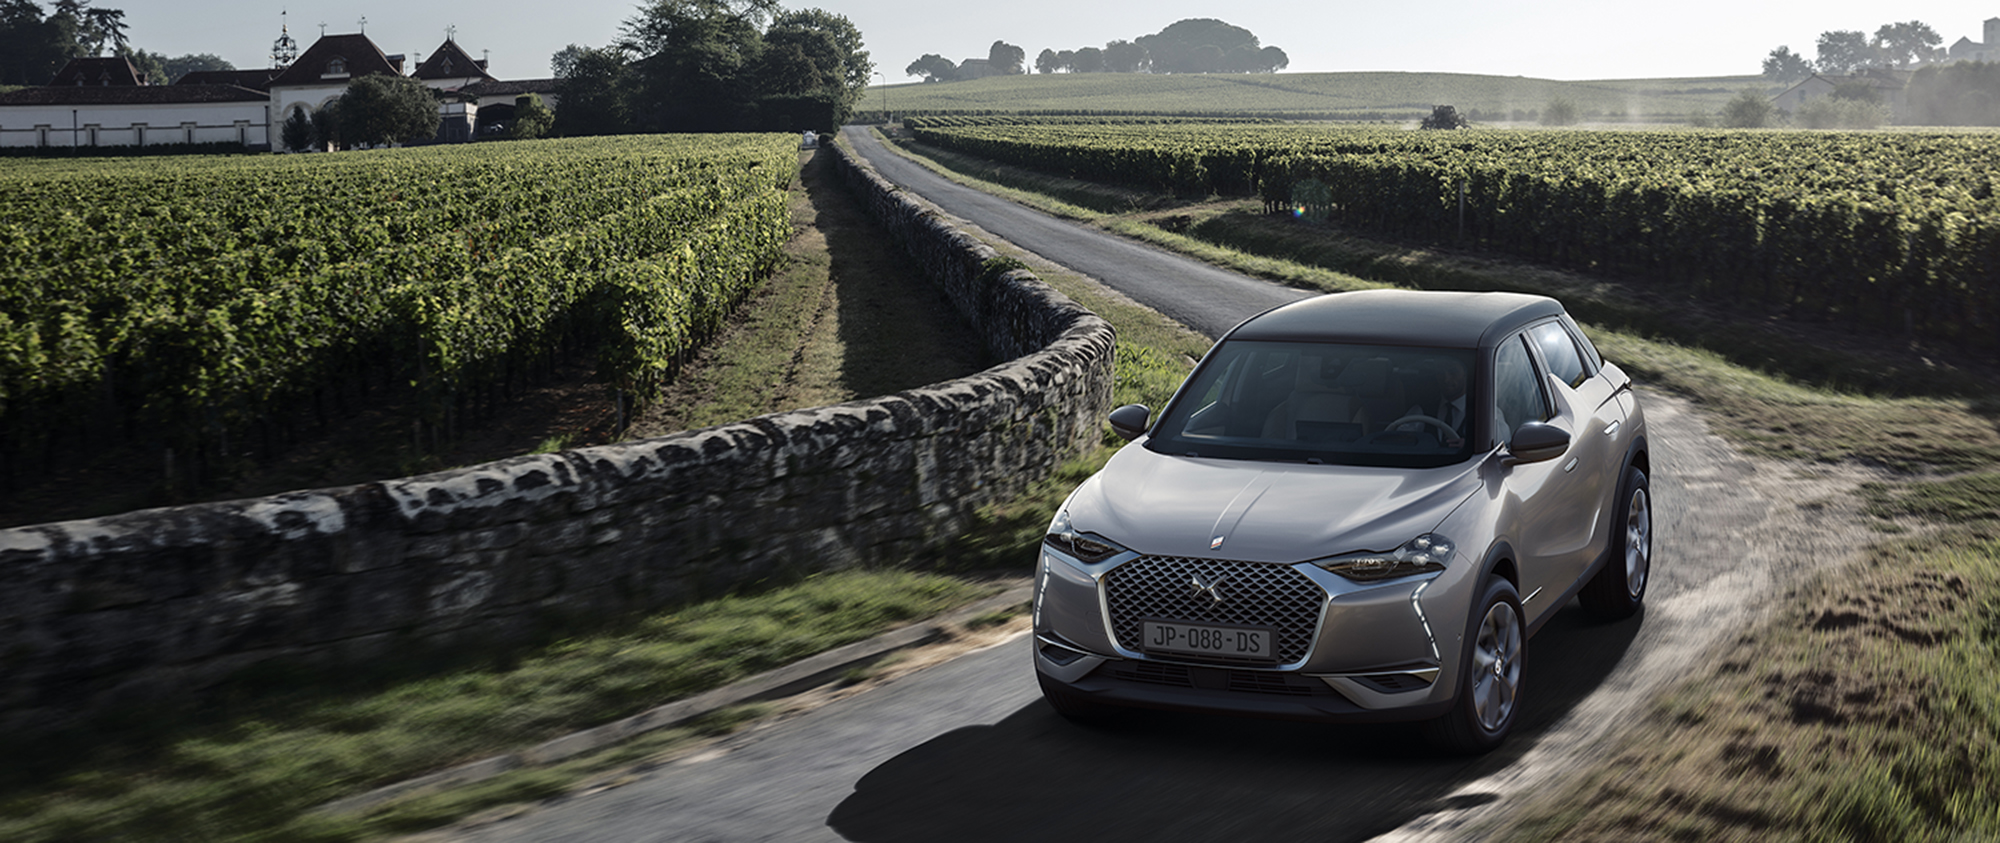 DS3 CROSSBACK E-TENSE VOORKANT